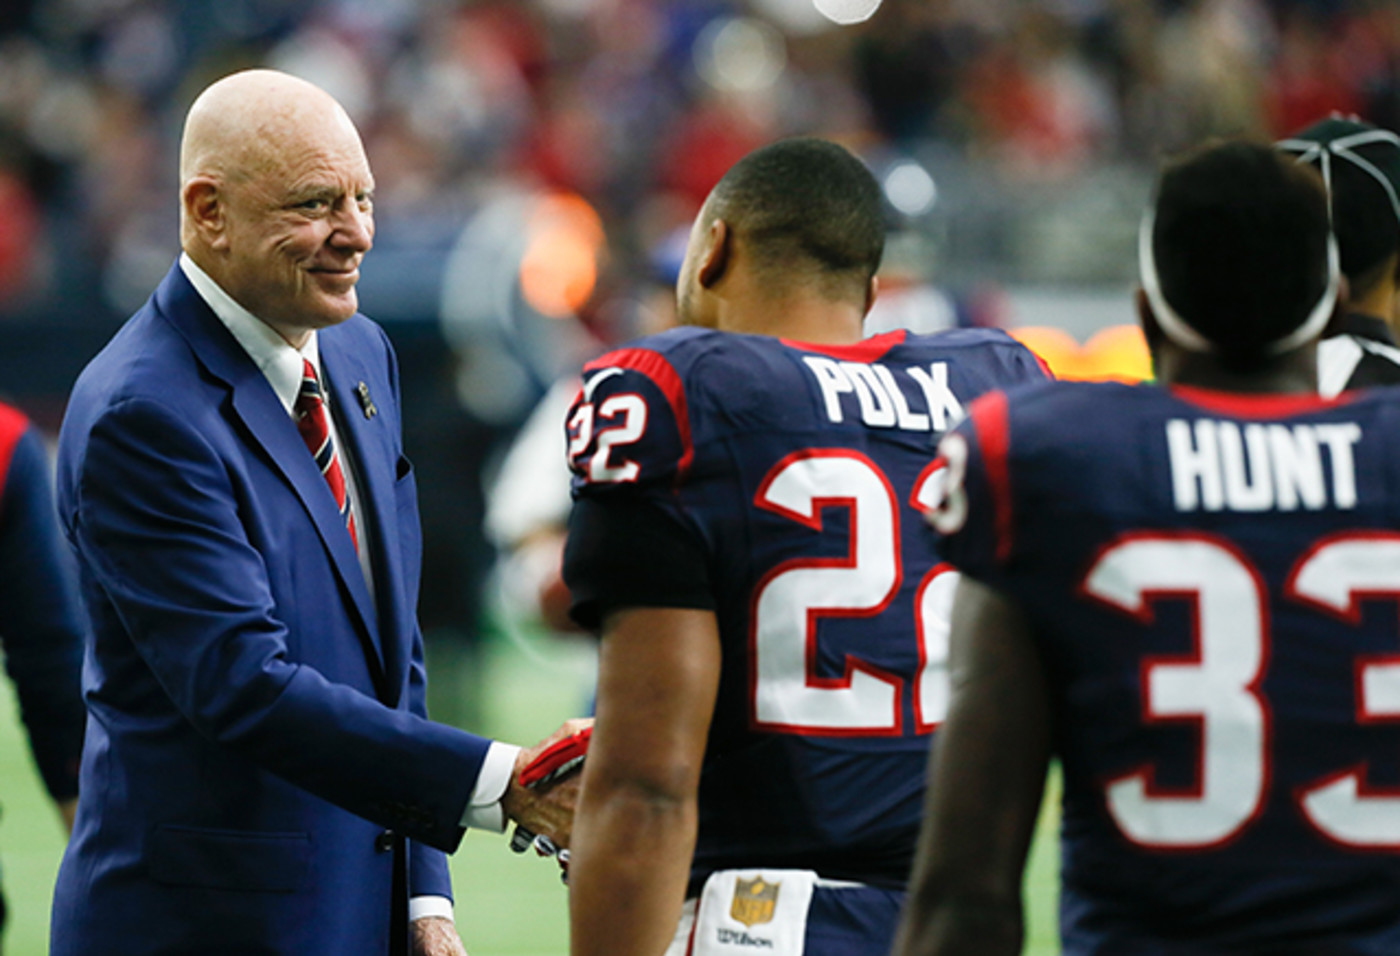 Bob McNair, owner of the Houston Texans